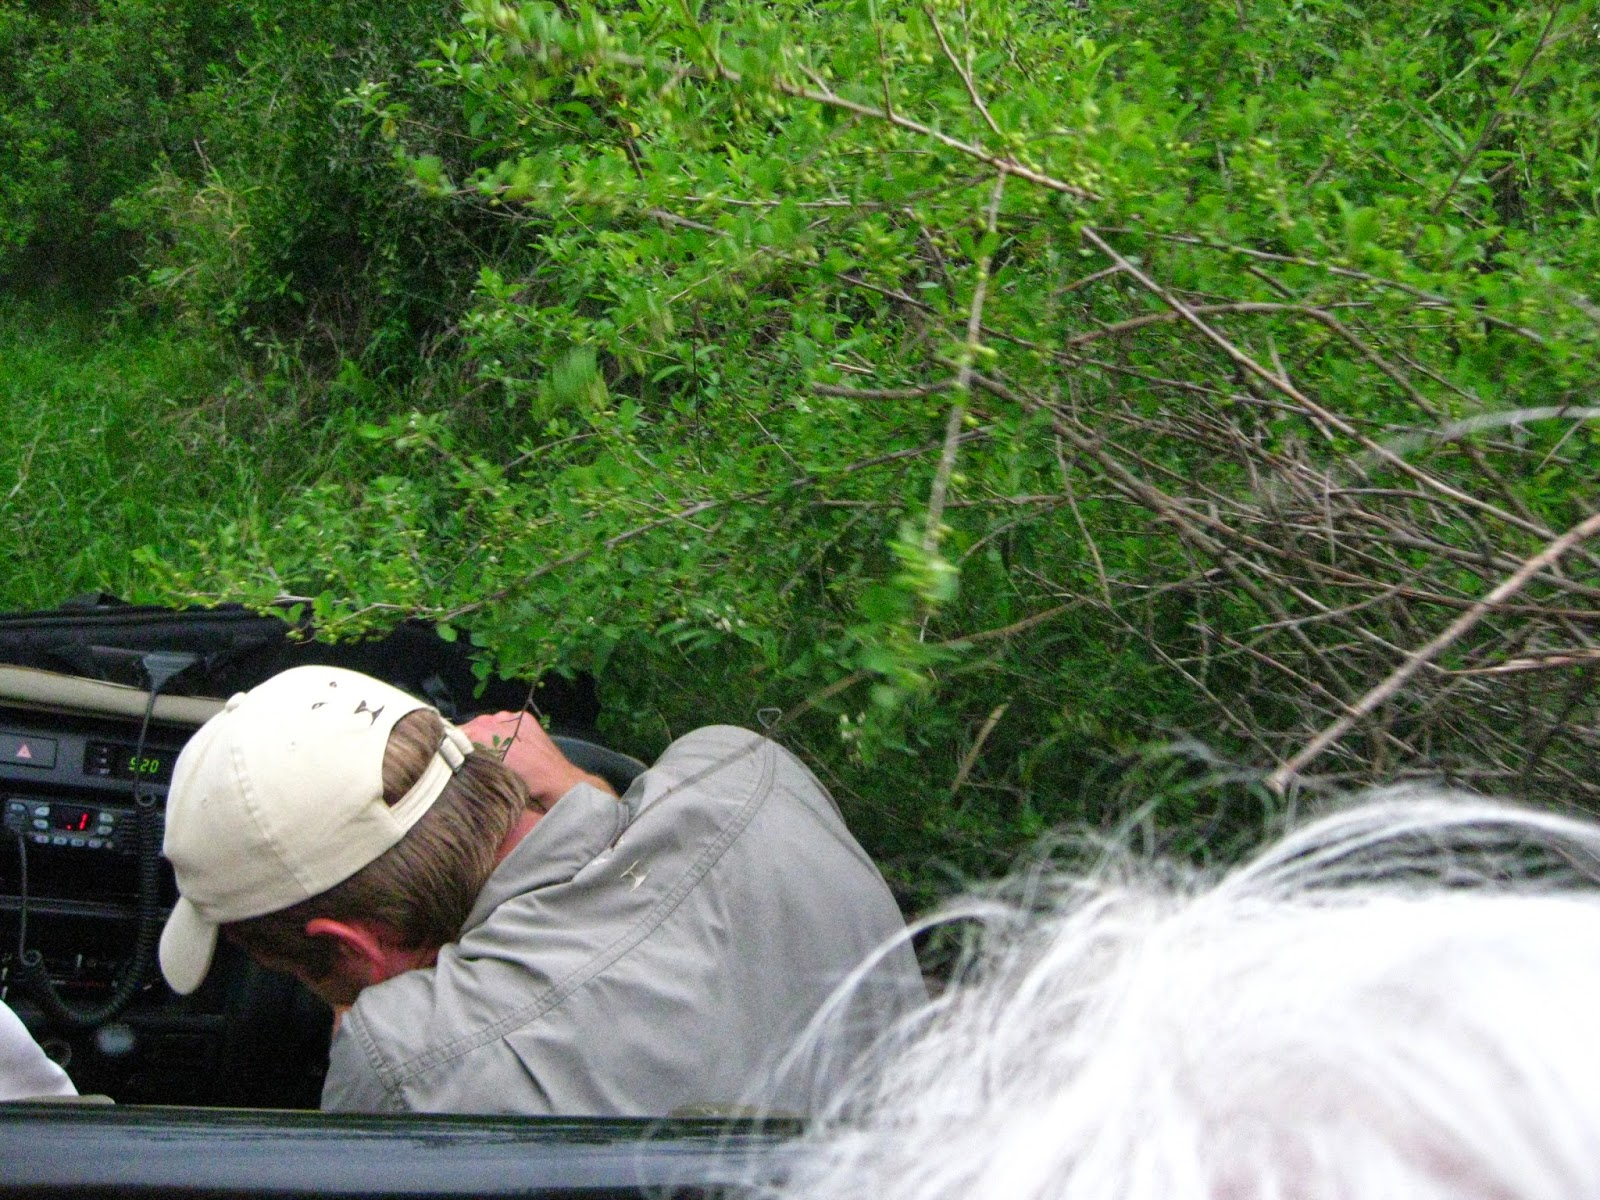 Sabi Sands - We have to do some off-roading through bushes